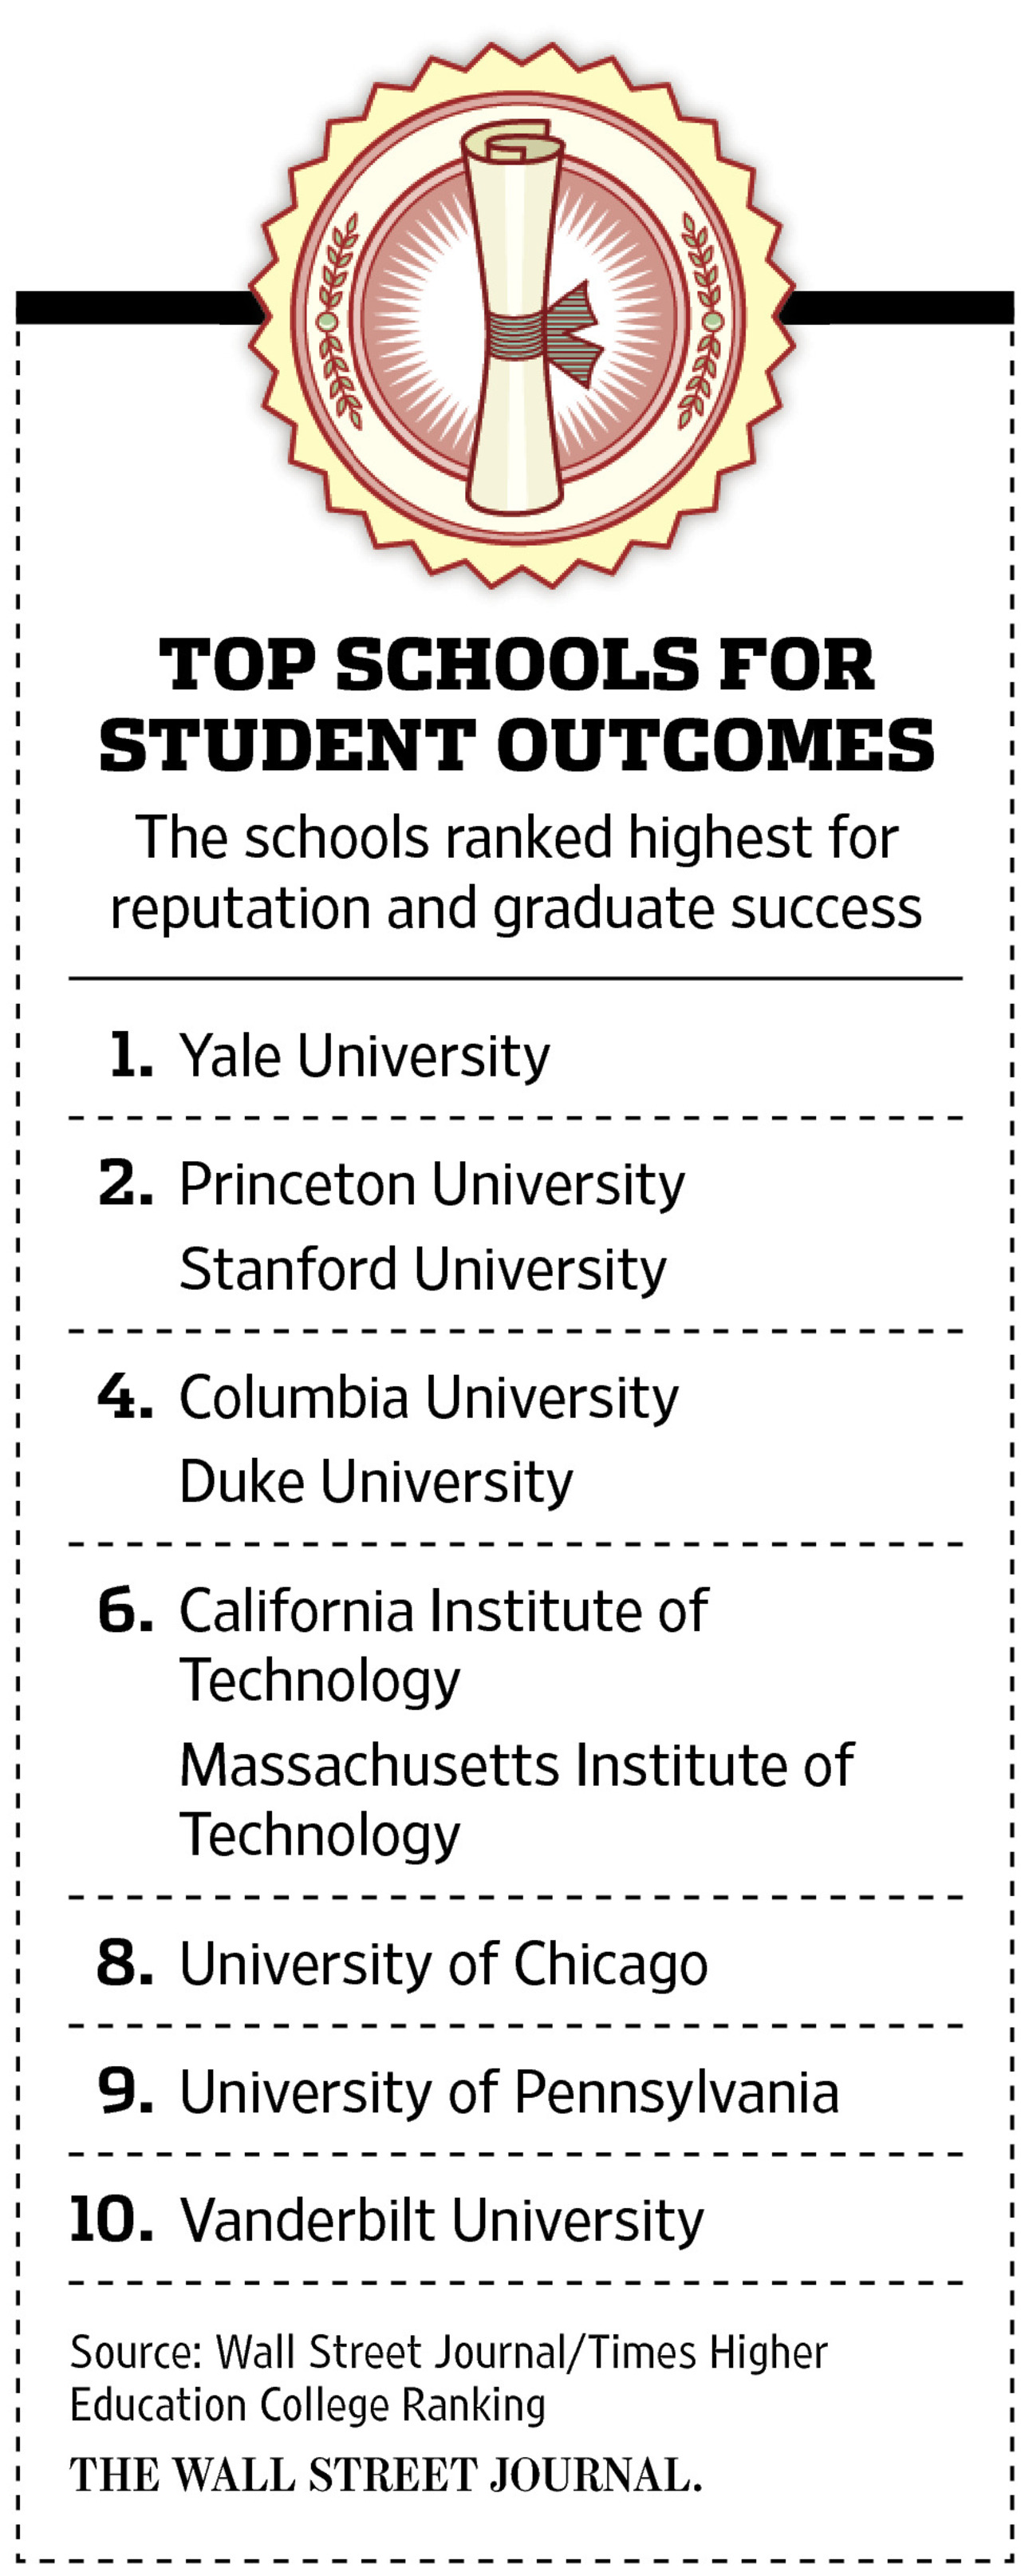 """The 2016 College rankings are out! The inaugural Wall Street Journal/Times higher educational rankings for US colleges were published Wednesday, September 28 in the Wall Street Journal. Yale University ranked number one, followed by Princeton University and Stanford. """"College is about opening the door to economic independence"""" says Anthony Carnevale, director of Georgetown University. """"You're going to have a career someday. You're going to do college for four or five years, but what you're going to do for the next 45 years is intimately linked to that.""""  This study looked at the following; Can new graduates find jobs? Can they repay their loans? Will their diplomas open the door or shut them out?  There are a number of reasons why students choose the colleges they do. A significant factor should be how employable the student will be after graduation and balancing that with the cost or debt a student and family will have to pay or incur.  College is a financial decision. Make sure your understand the future impact to the financial decisions you make today. It will shape the rest of your life!  For the full article please visit the Wall Street Journal."""